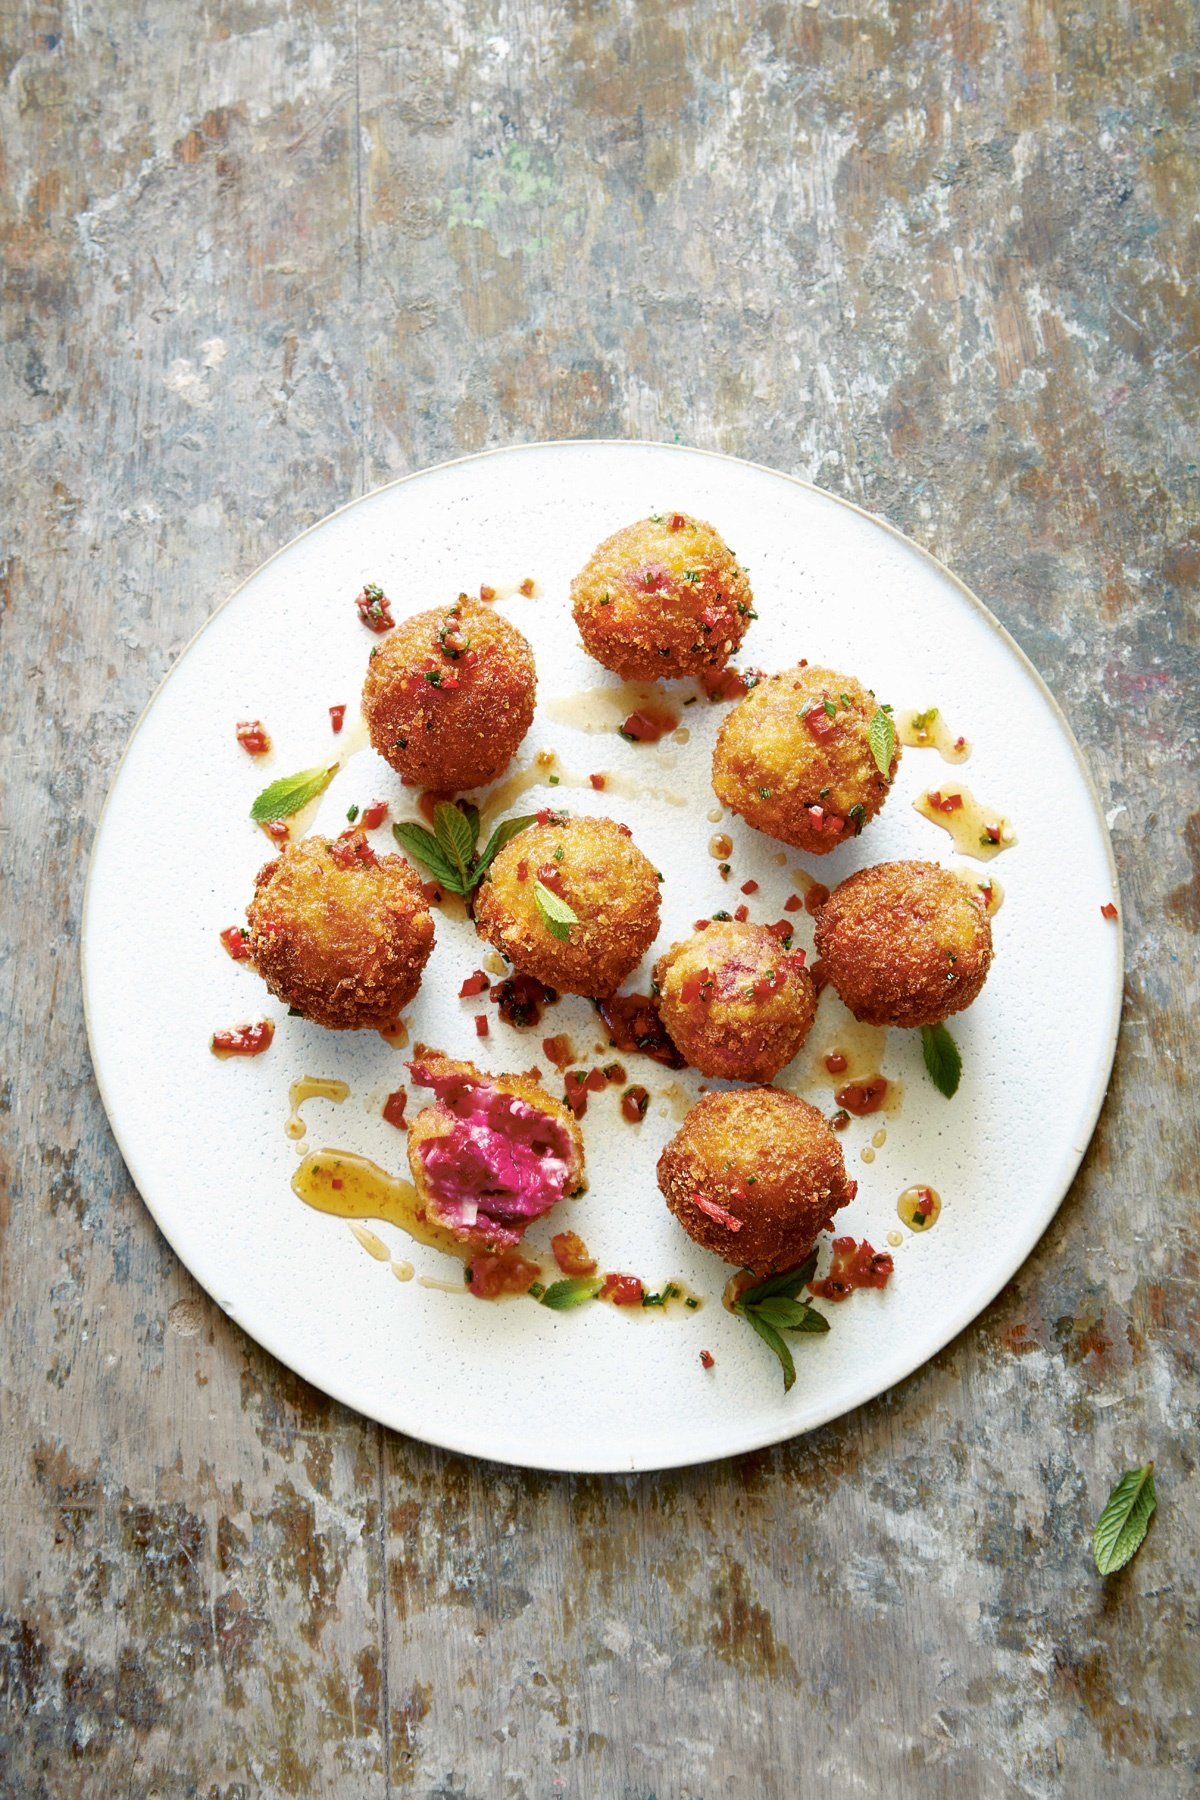 Image of Ryan Riley's Goat's Cheese and Beetroot Croquettes